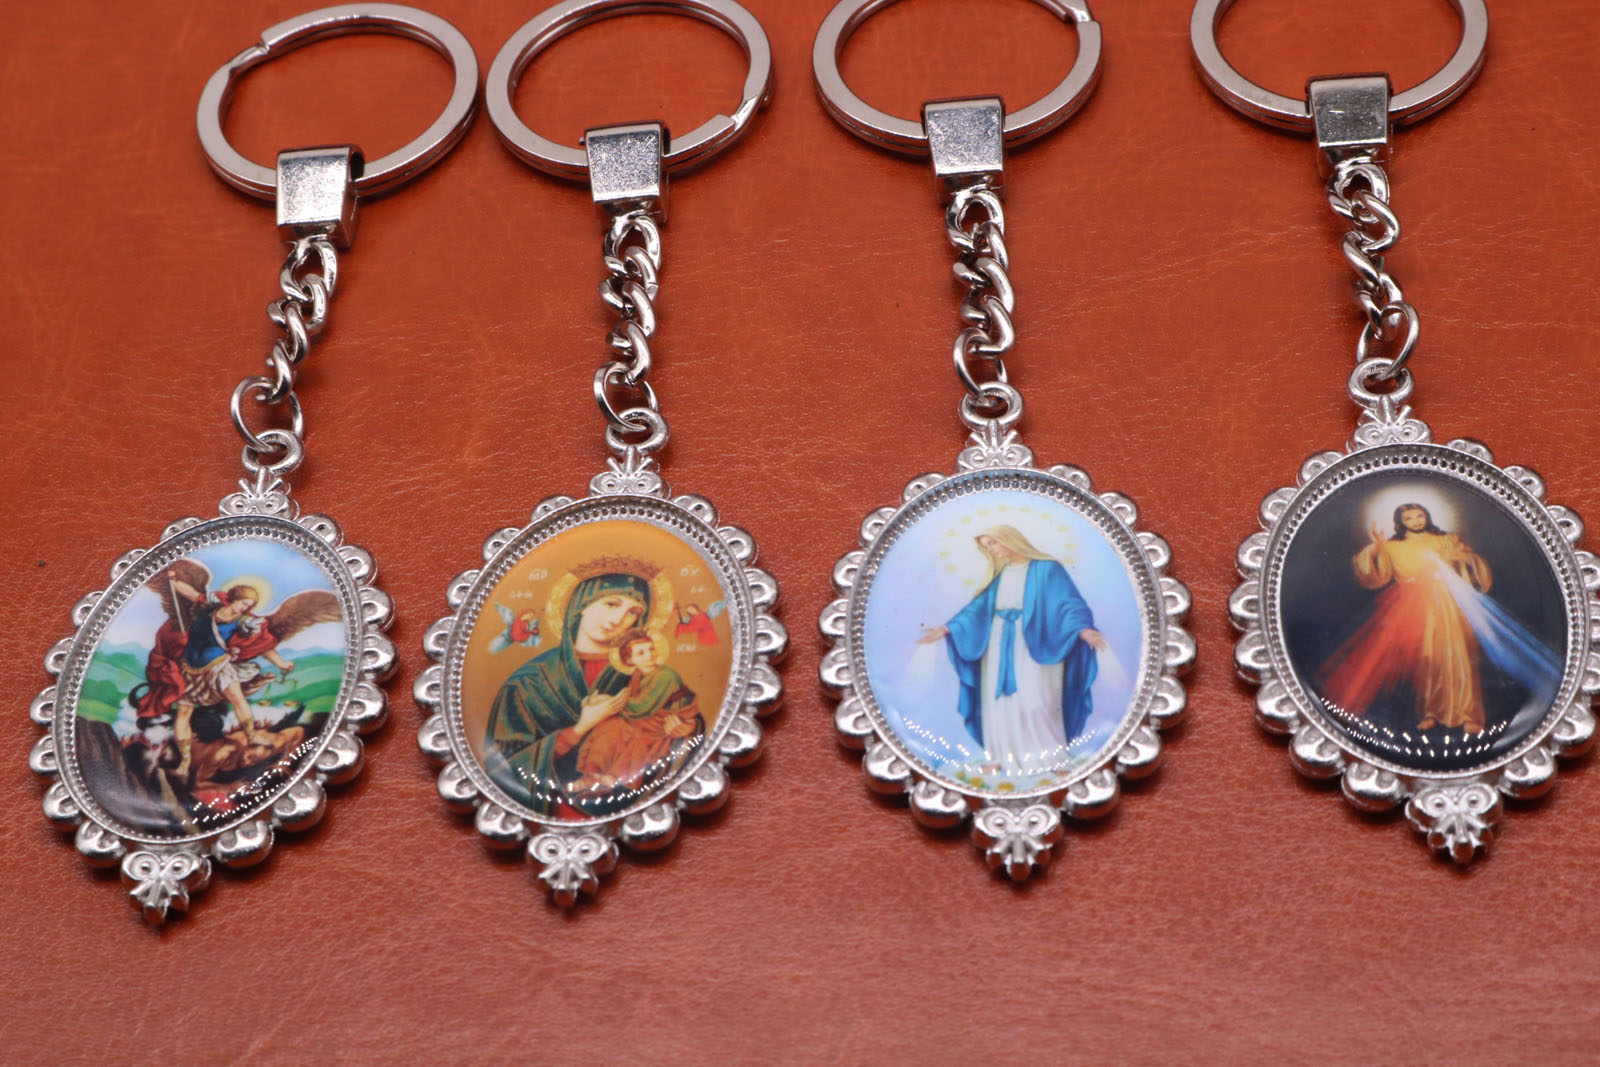 Silver Charm Mary Key, Jesus Keychain Key, Michael Angel Keychain, Handbag Gift Accessories ...